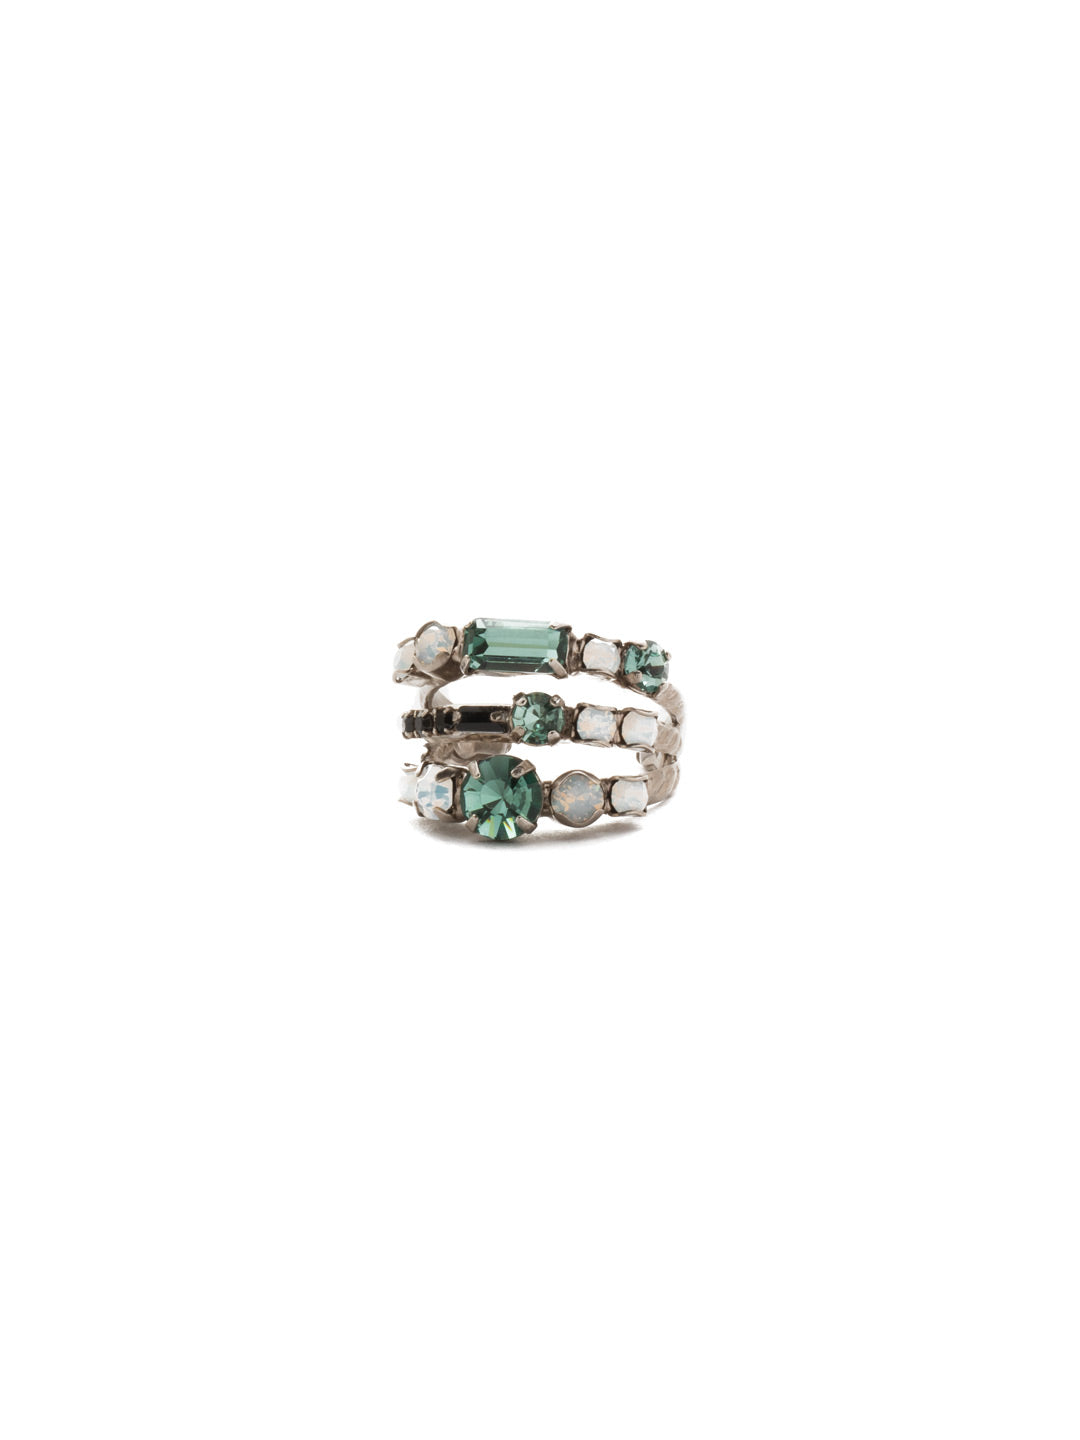 Triple Threat Stacked Ring - RDK23ASGDG